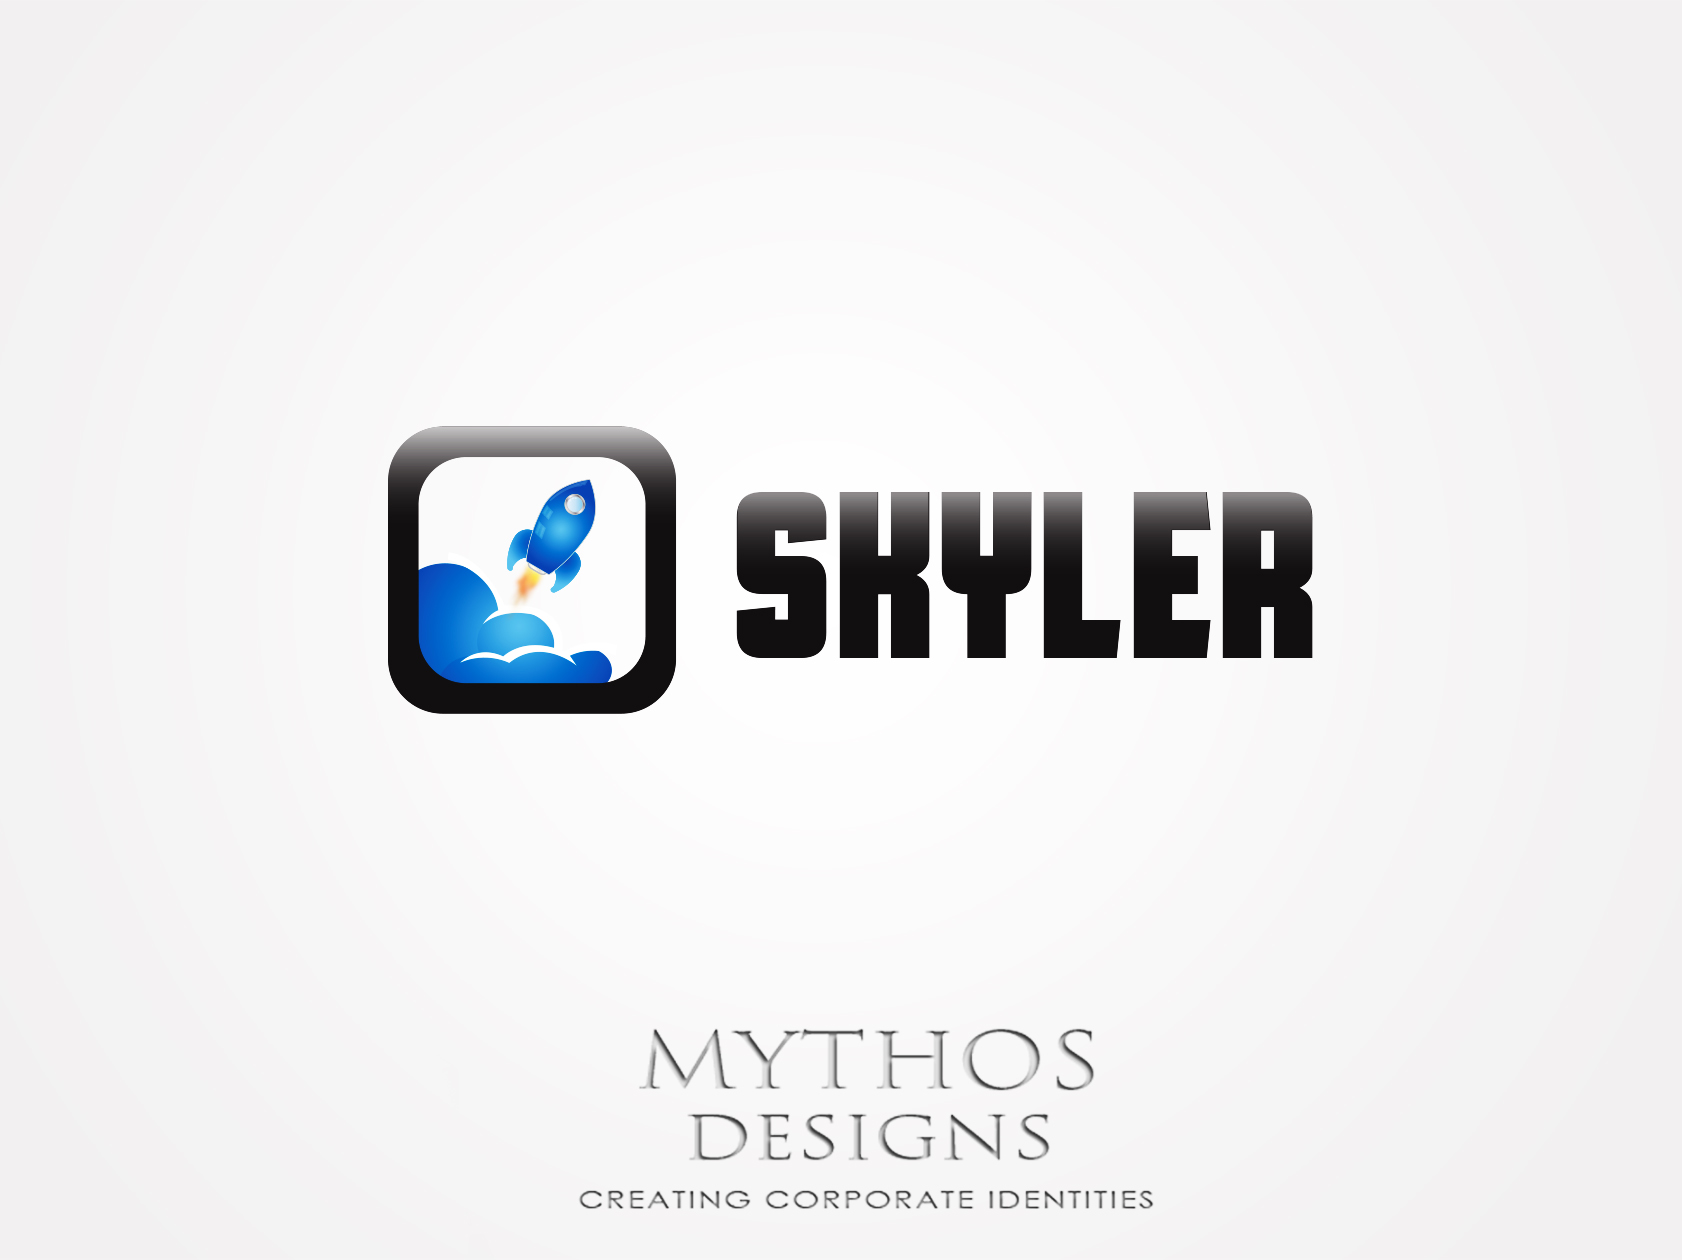 Logo Design by Mythos Designs - Entry No. 3 in the Logo Design Contest Artistic Logo Design for Skyler.Asia.